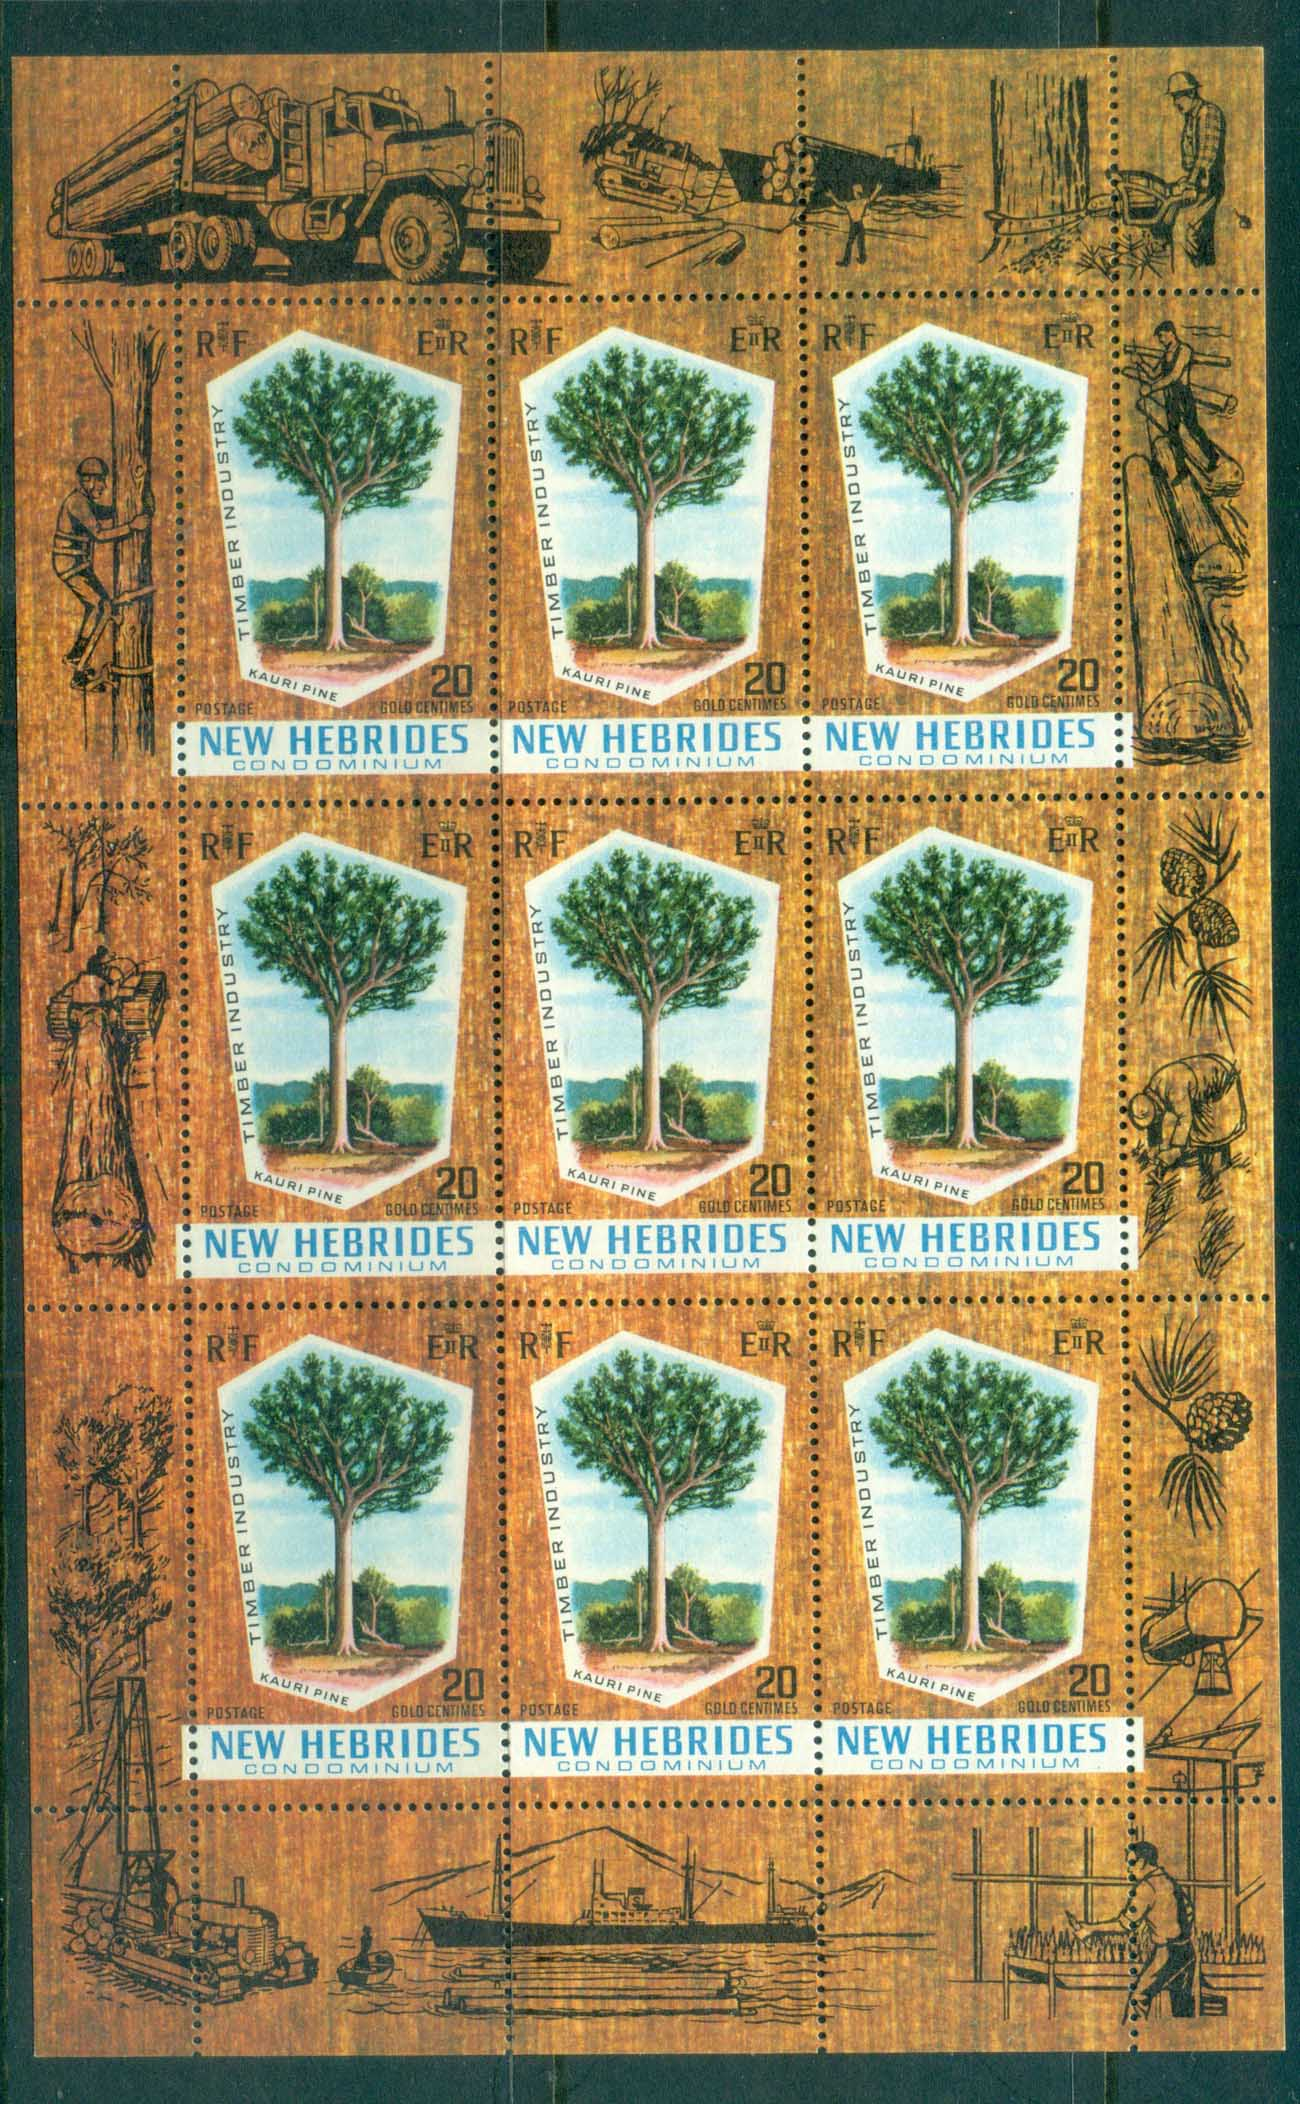 New Hebrides (Br) 1969 Kauri Pine Sheetlet MUH